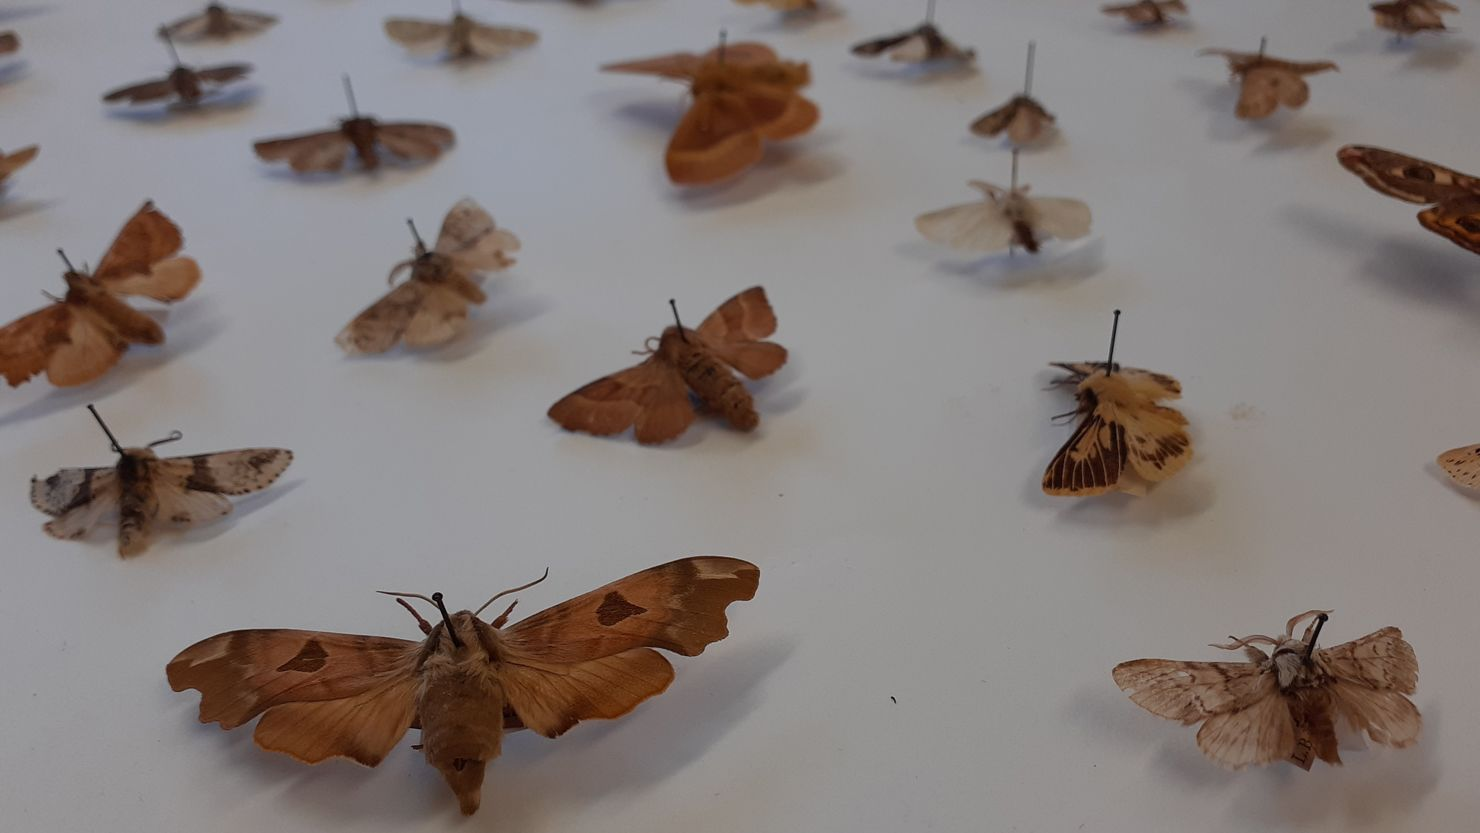 Pinned butterflies in a museum store